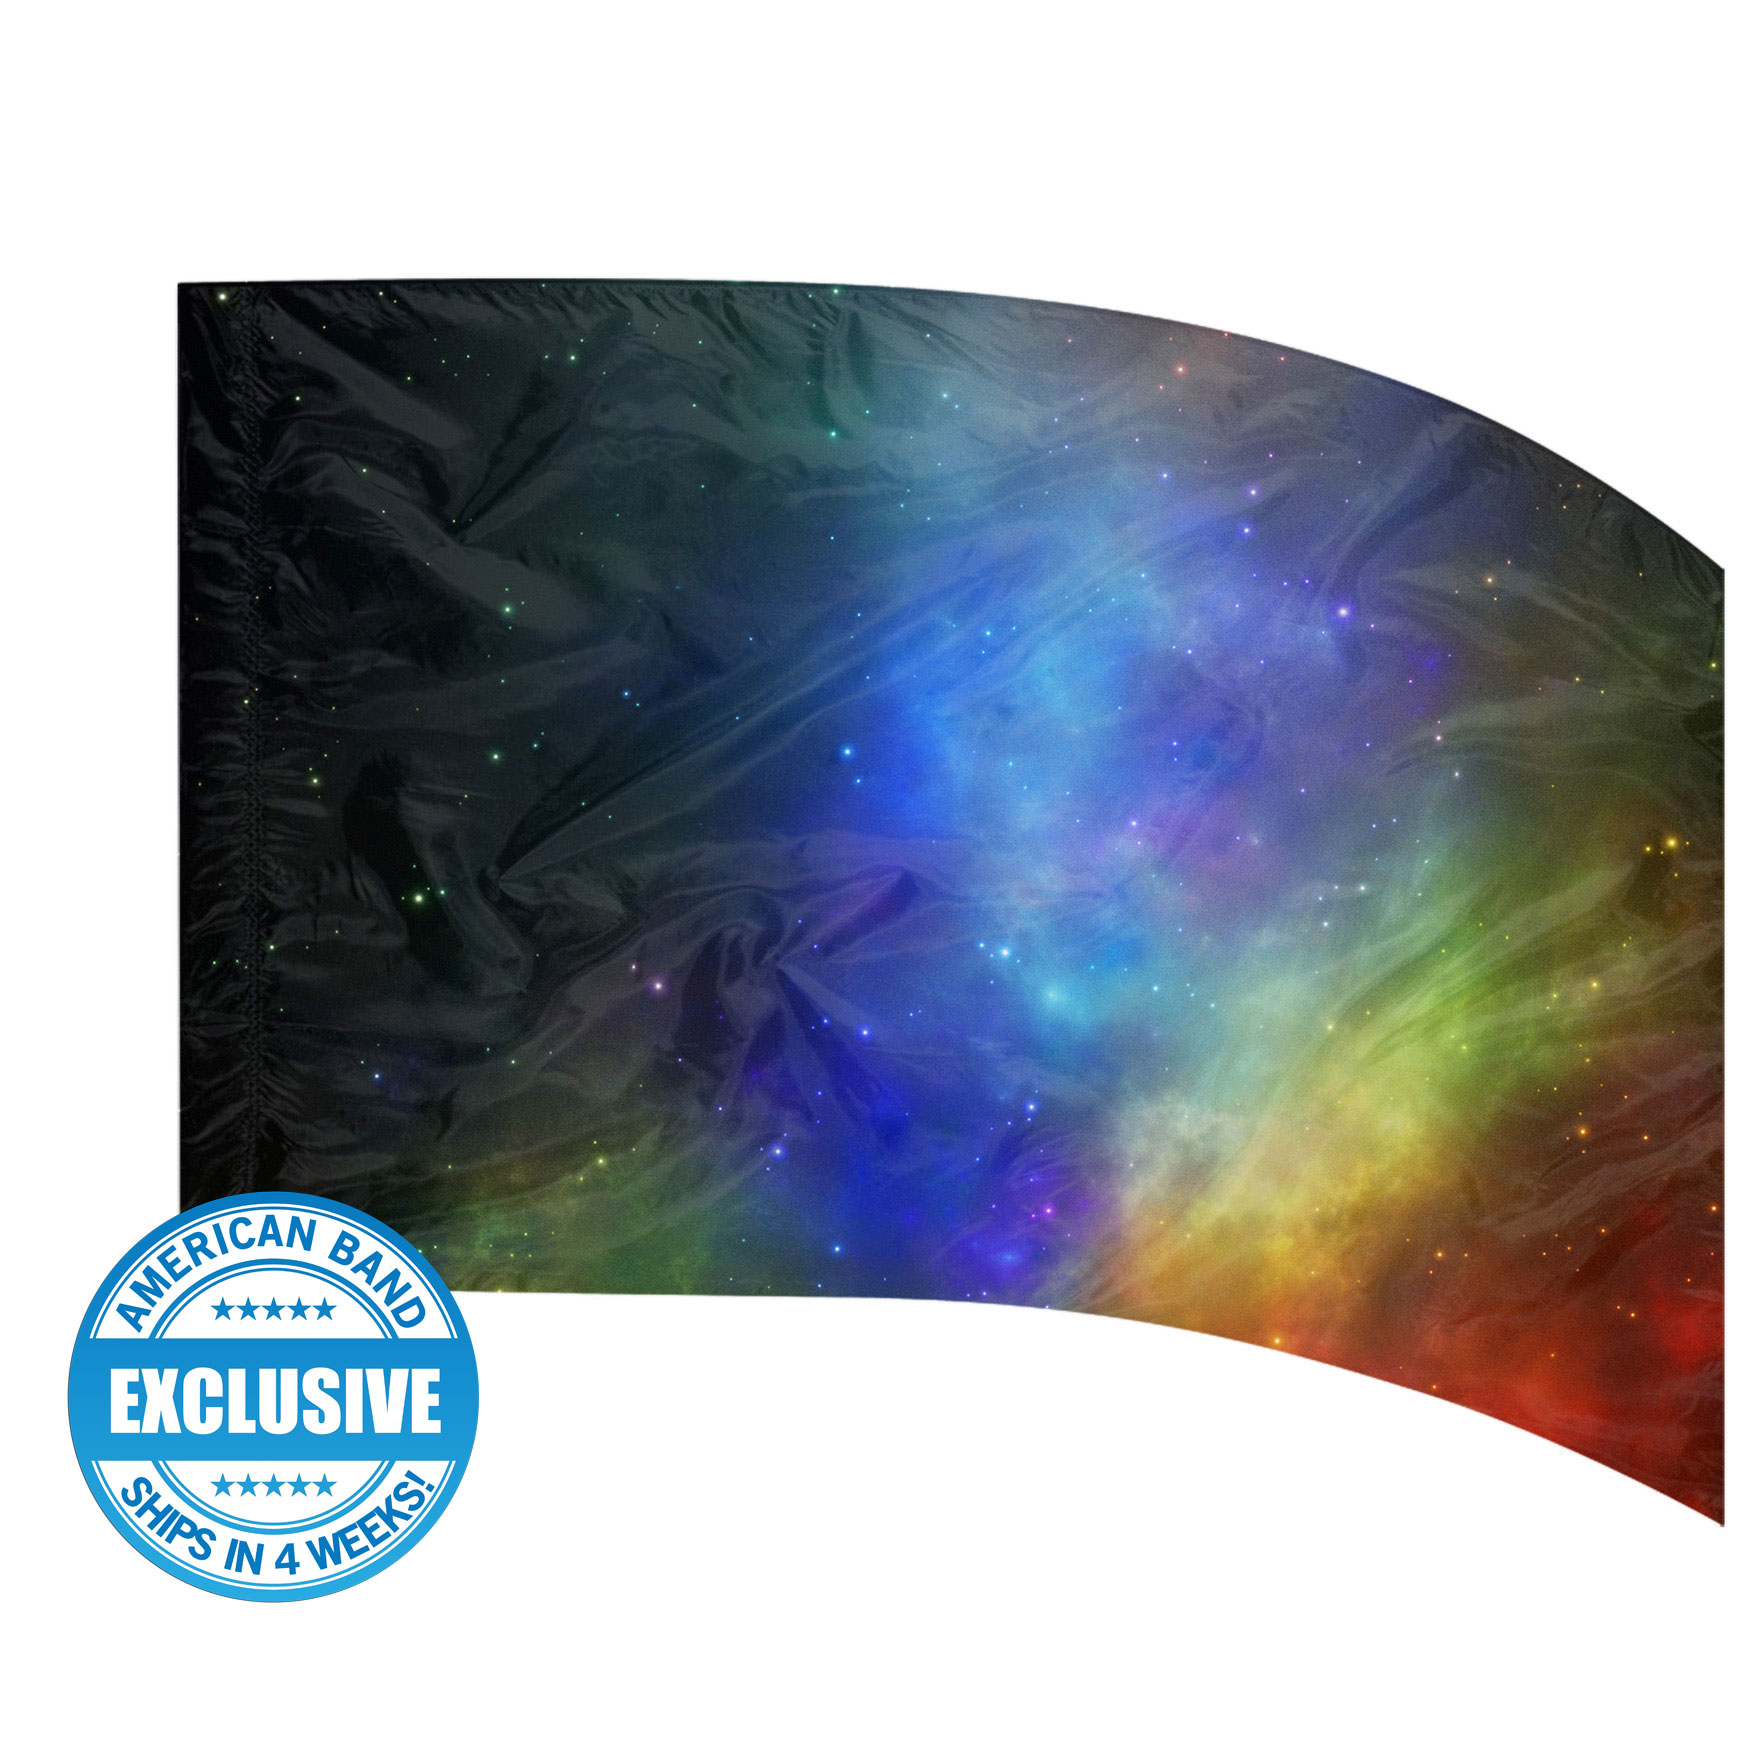 Made-to-Order Digital Cosmos Flags: Style 8